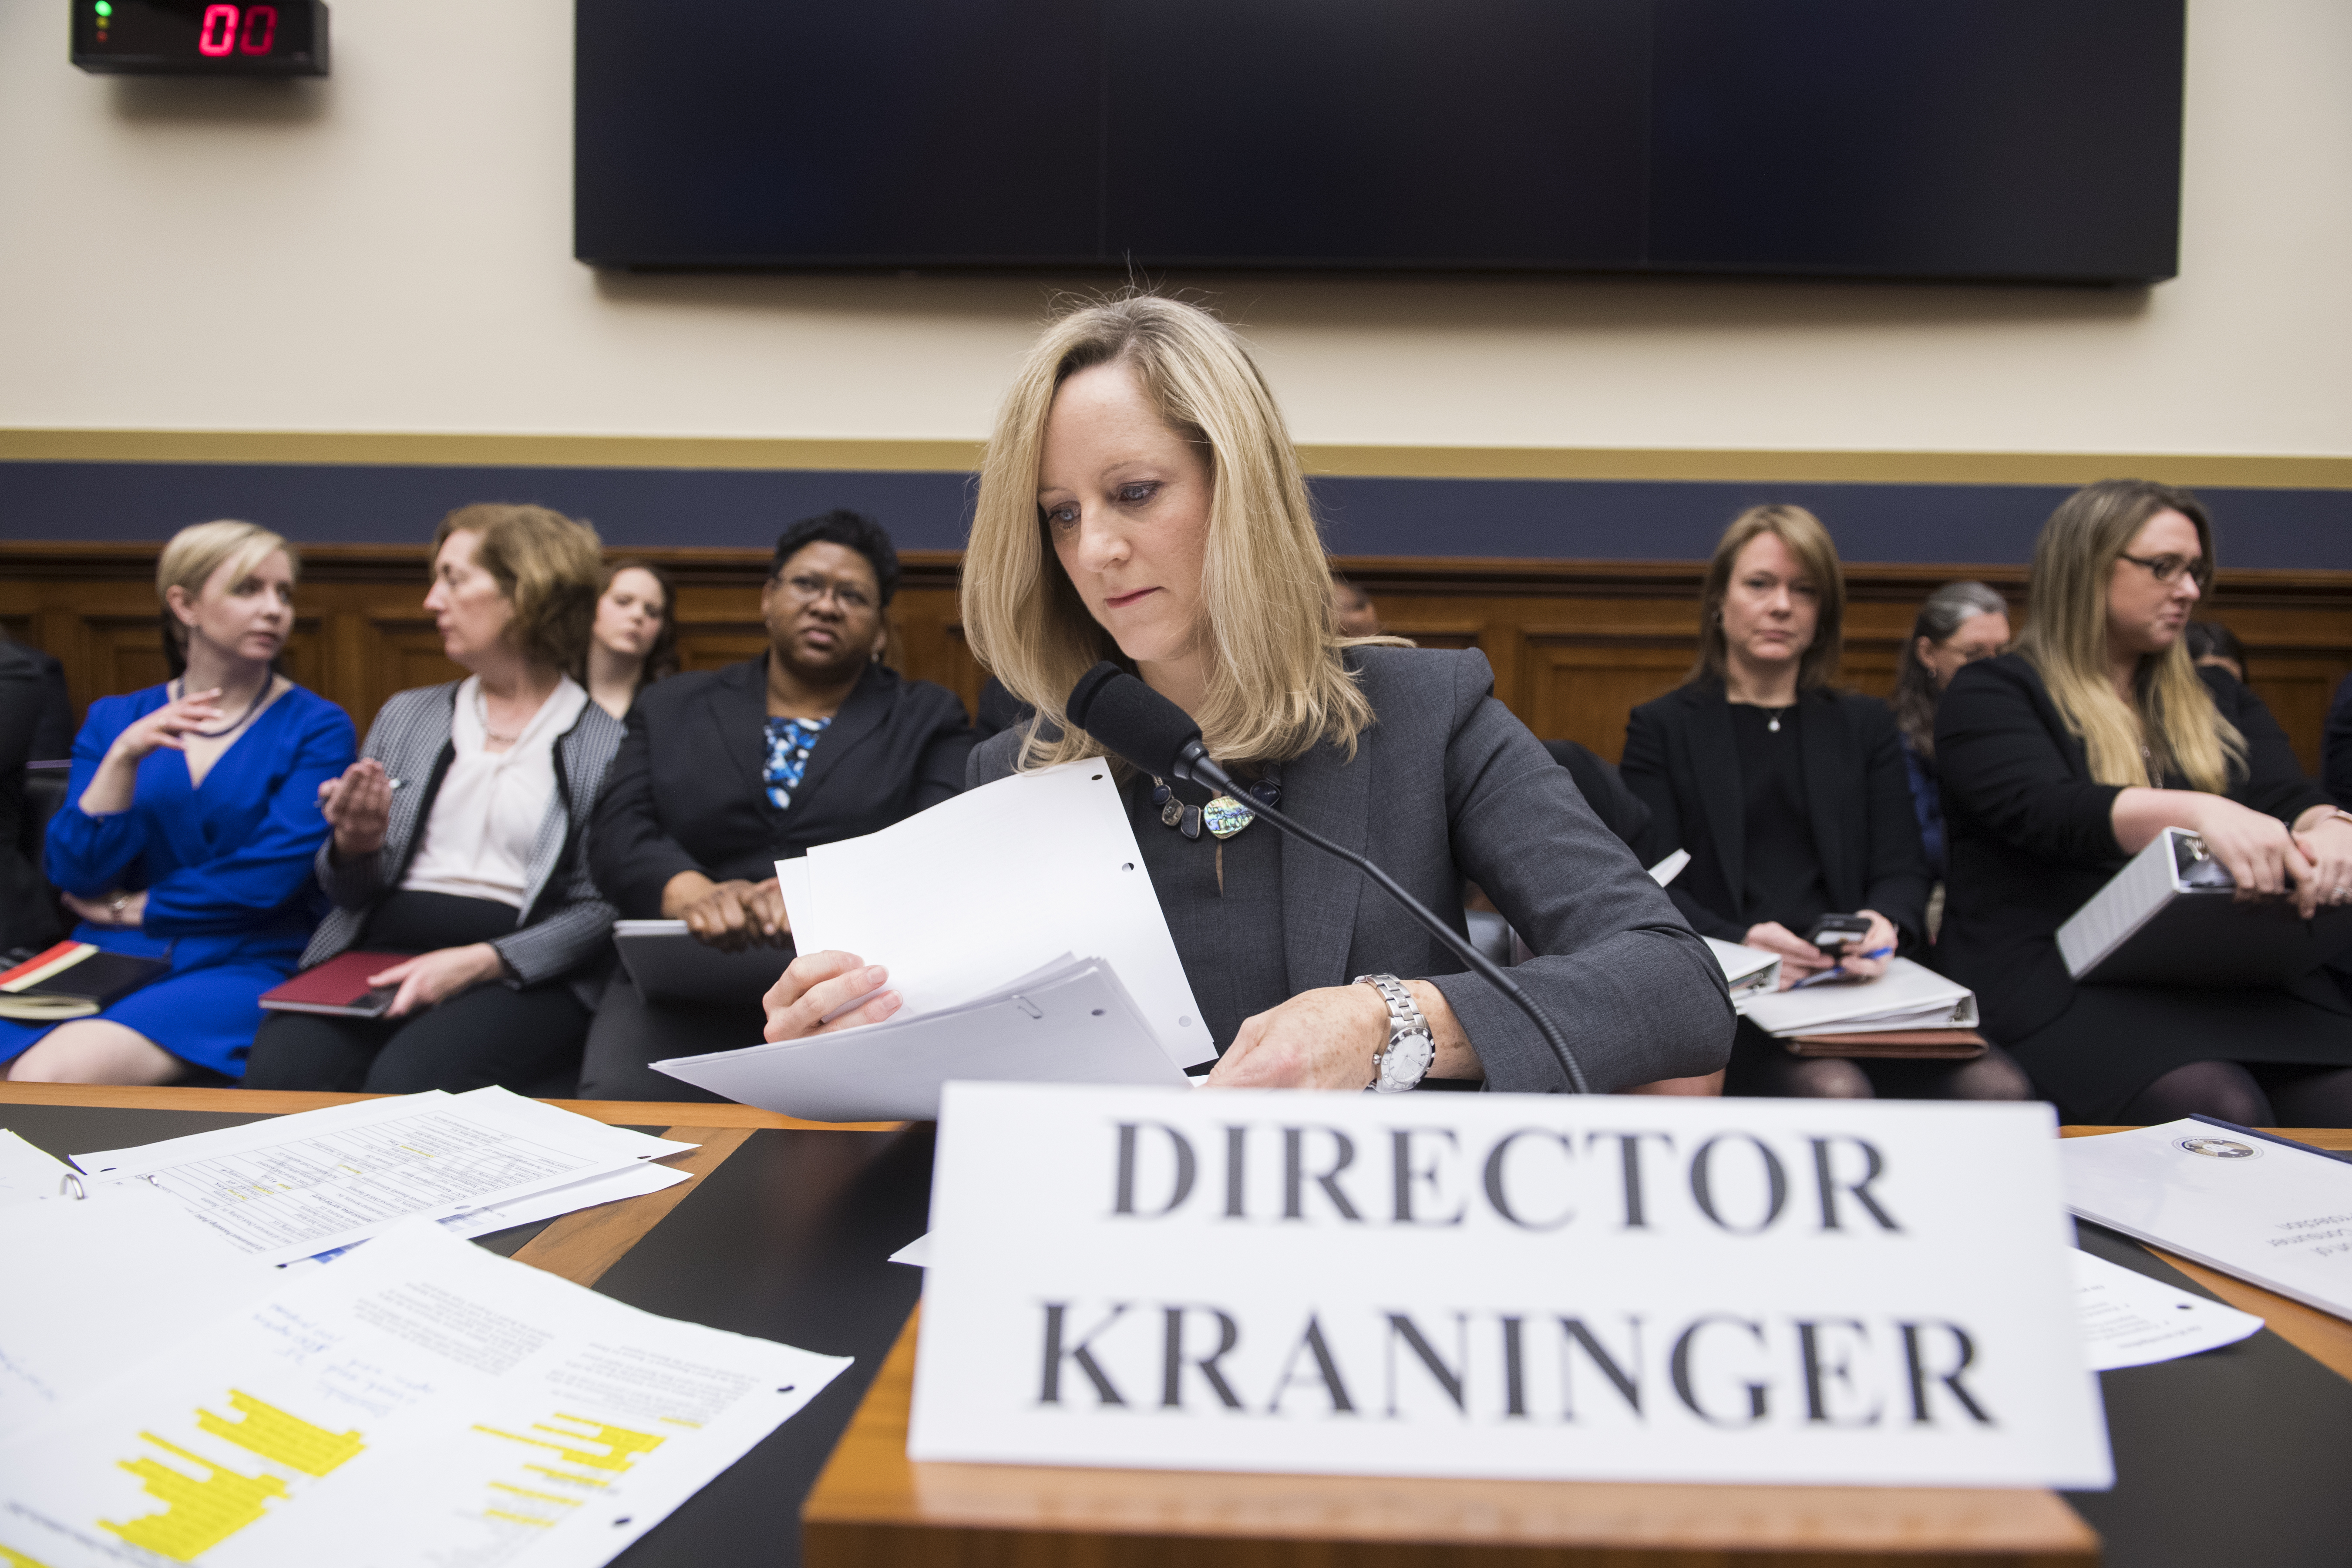 """UNITED STATES - MARCH 7: Kathy Kraninger, director of the Consumer Financial Protection Bureau, prepares to testify at a House Financial Services Committee hearing titled """"Putting Consumers First? A Semi-Annual Review of the Consumer Financial Protection Bureau,"""" in Rayburn Building on Thursday, March 7, 2019. (Photo By Tom Williams/CQ Roll Call)"""